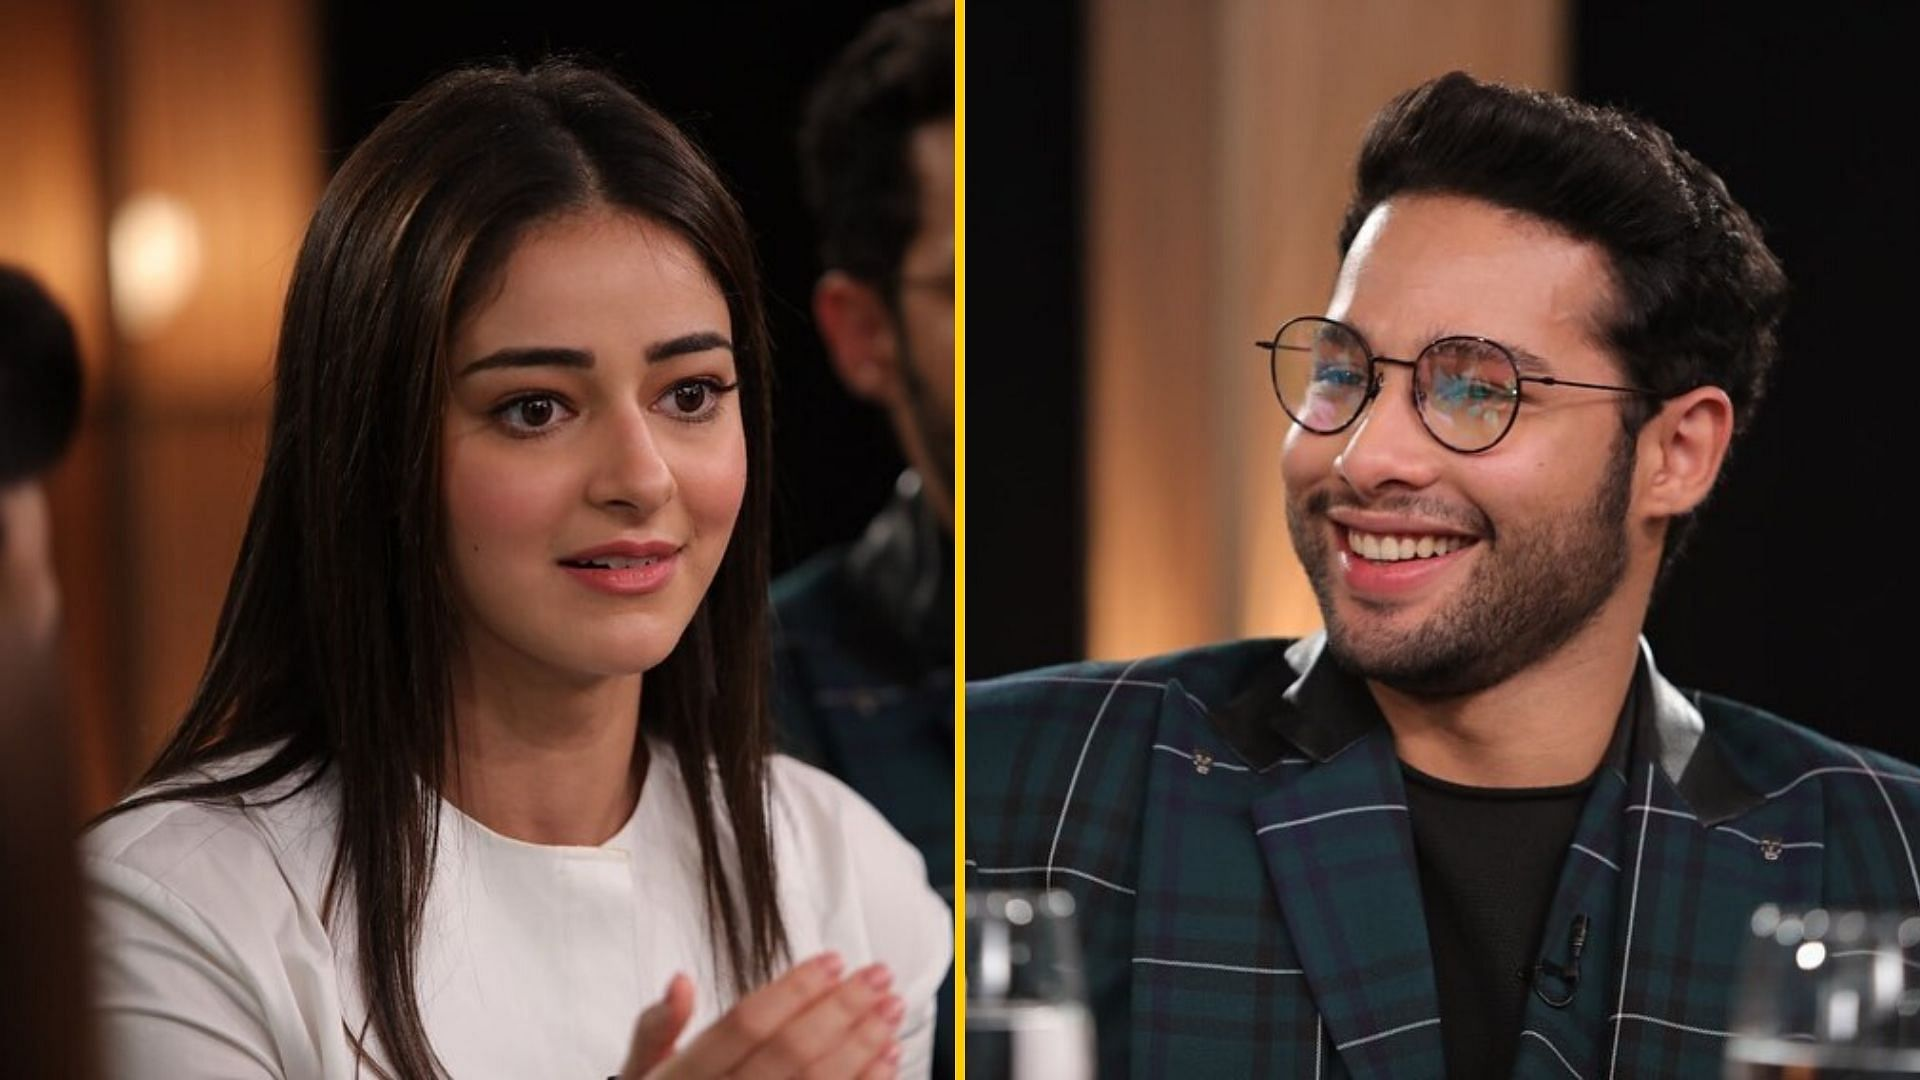 Ananya Defends Nepotism, Siddhant Chaturvedi Has a Befitting Reply